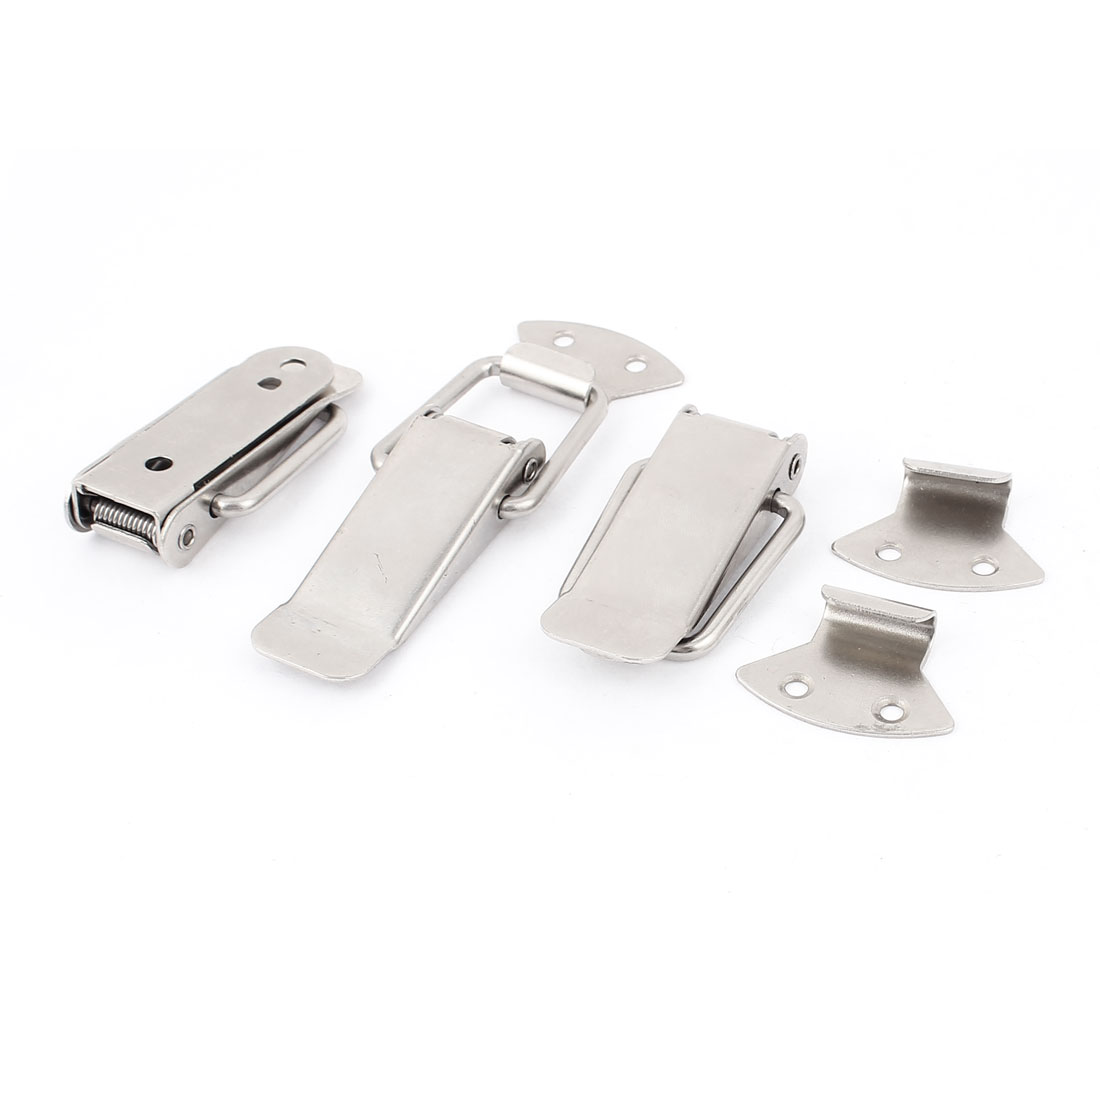 3 Pcs Stainless Steel Suitcase Safety Lock Draw Toggle Latch